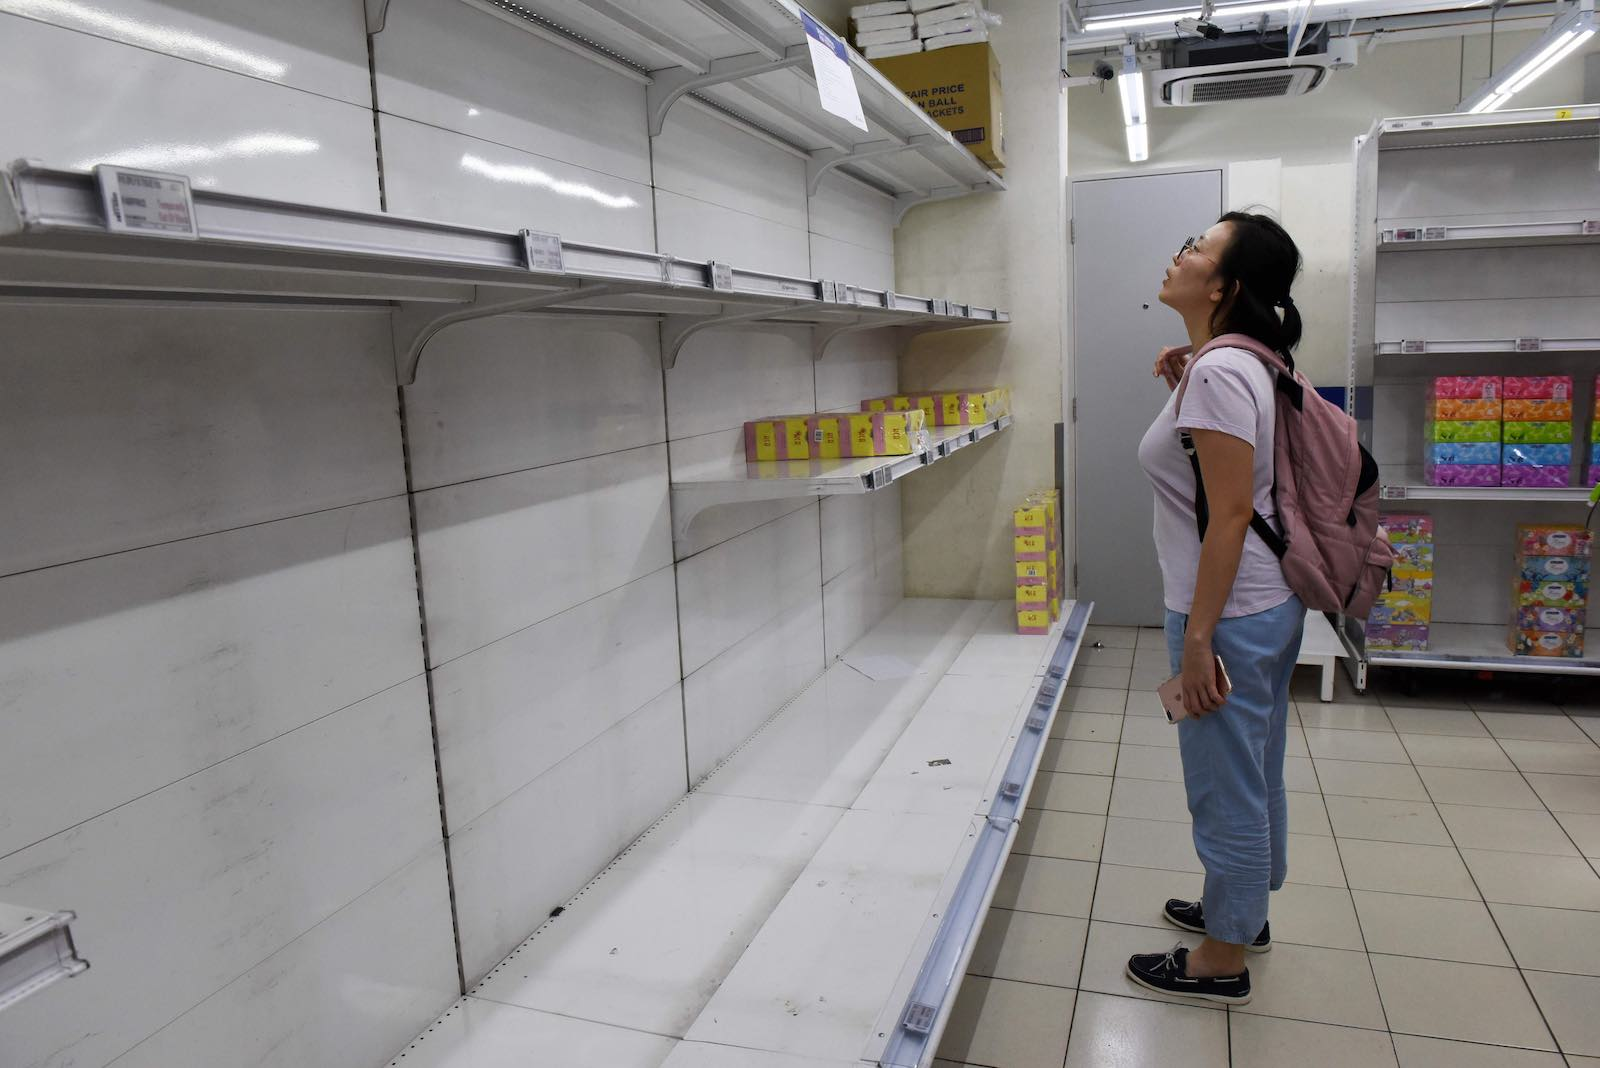 Empty shelves at a Singapore supermarket as the Covid pandemic spread in March 2020 (Catherine Lai/AFP via Getty Images)